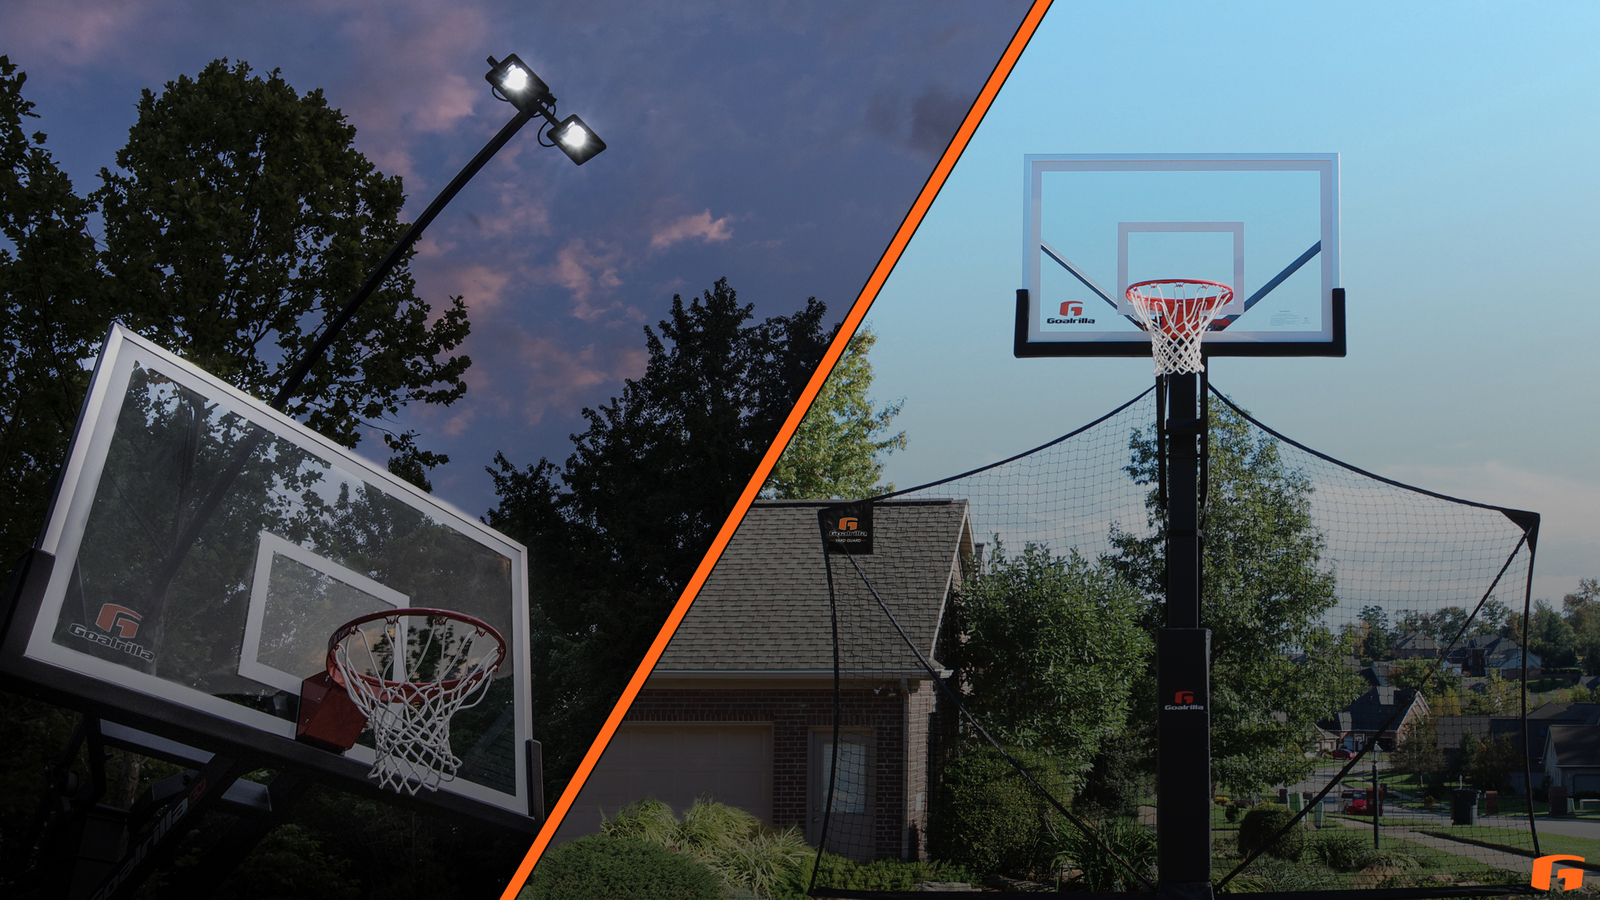 Caring for your Goalrilla Yard Guard and Hoop Light